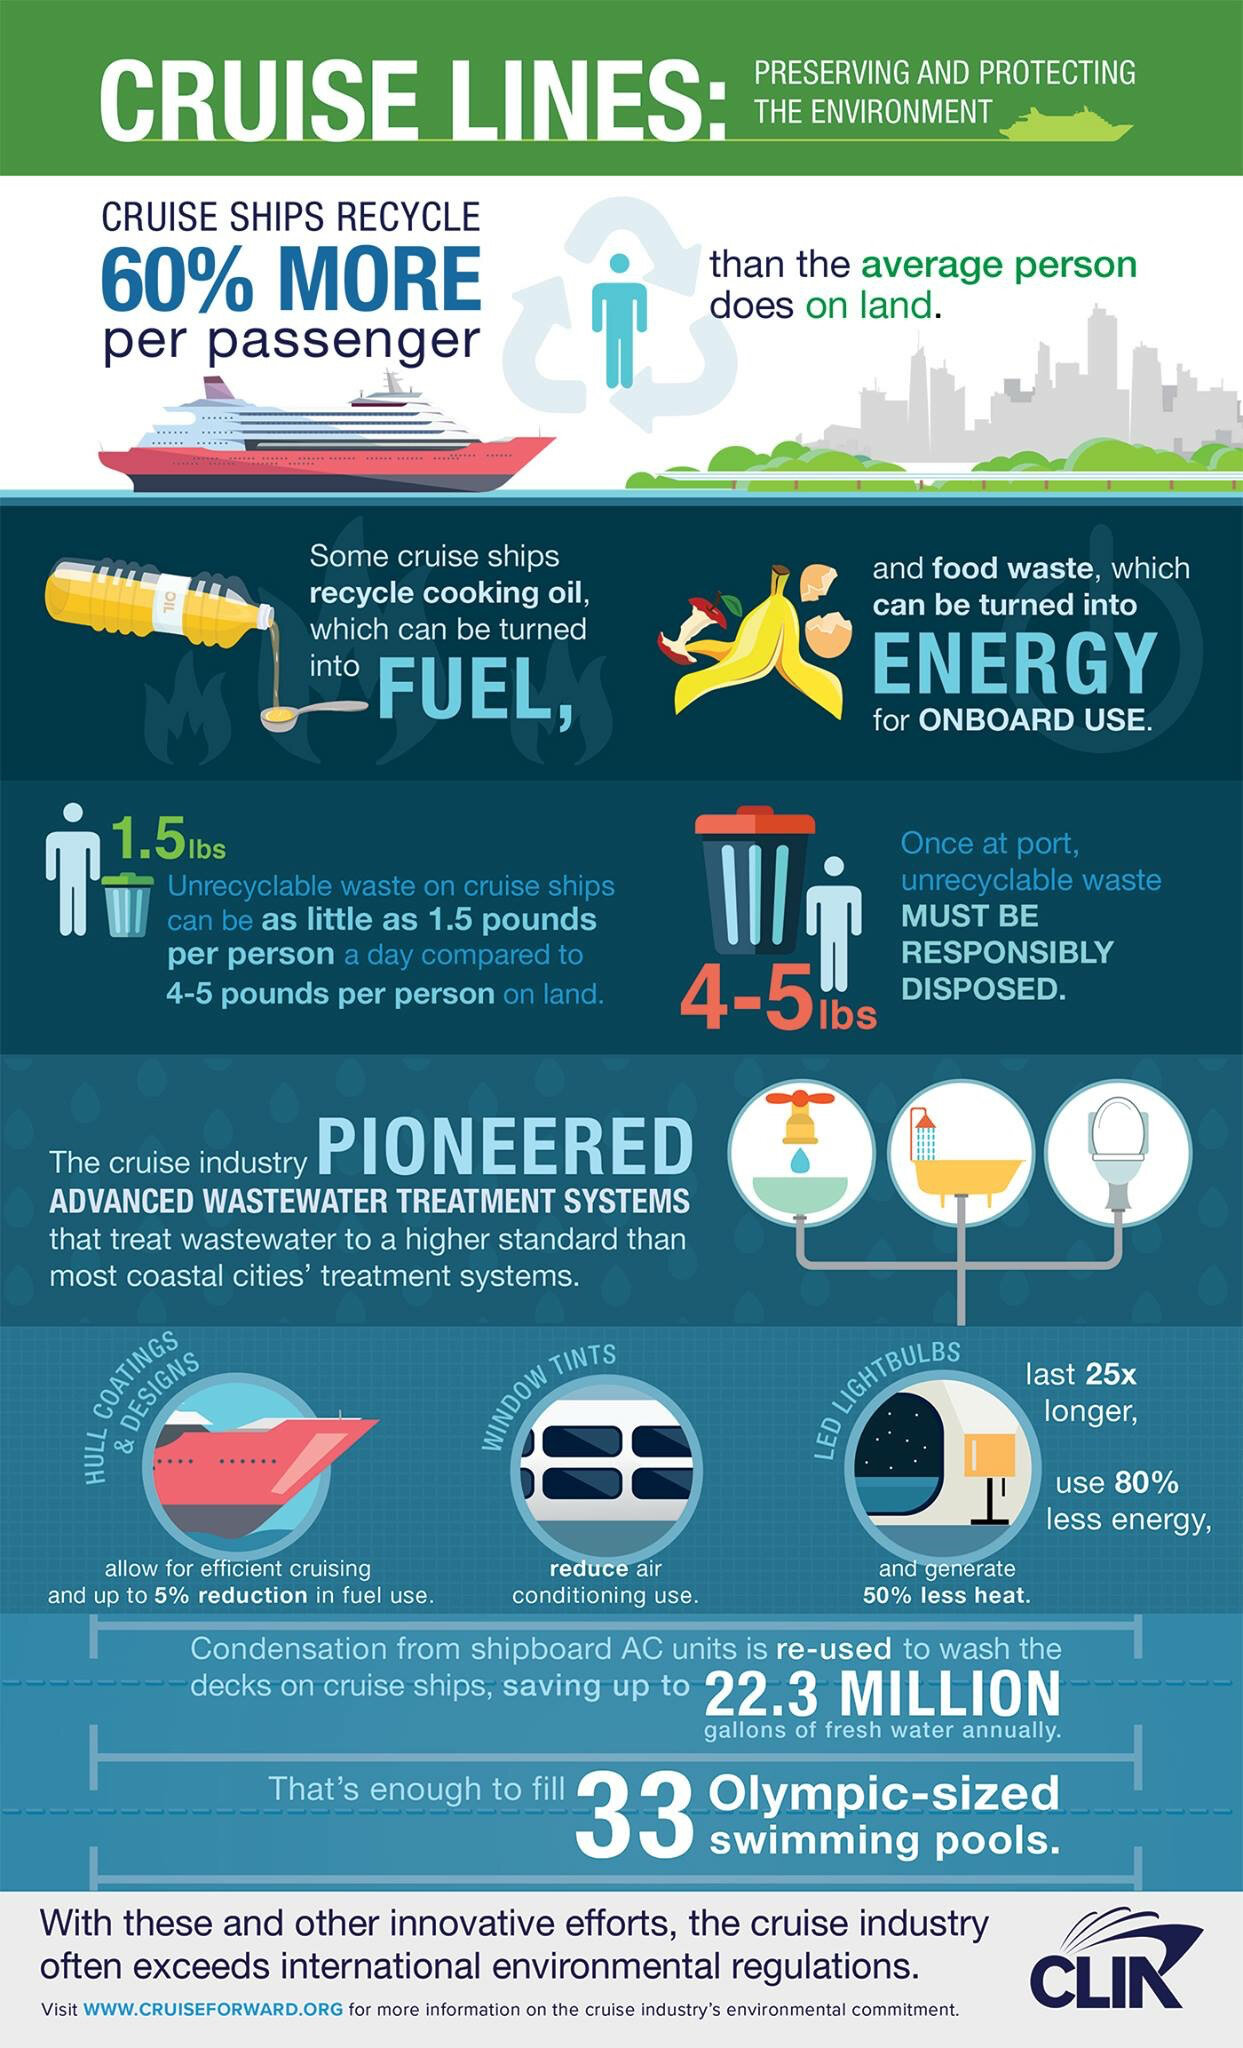 Infographic: How Cruise Lines are Working to Protect the Environment